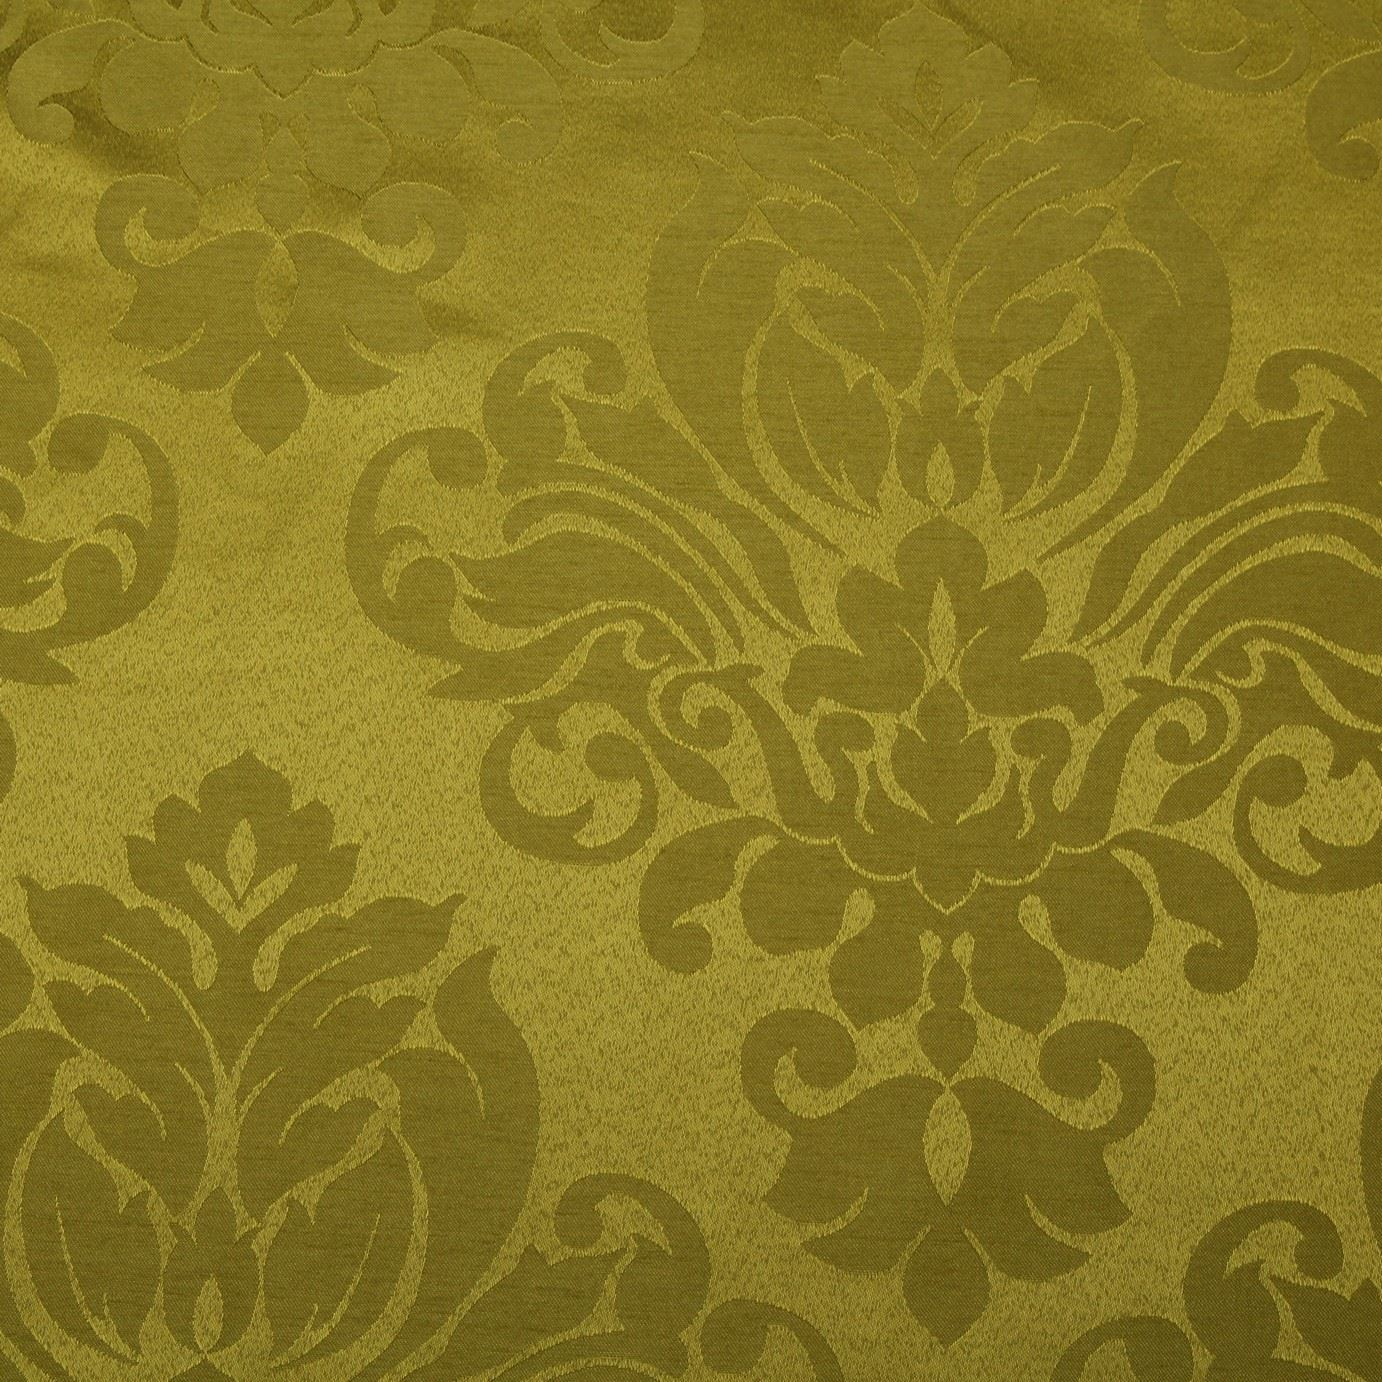 FLORAL-DAMASK-FAUX-SILK-JACQUARD-CURTAIN-UPHOLSTERY-FABRIC-MATERIAL-12-COLOURS thumbnail 15